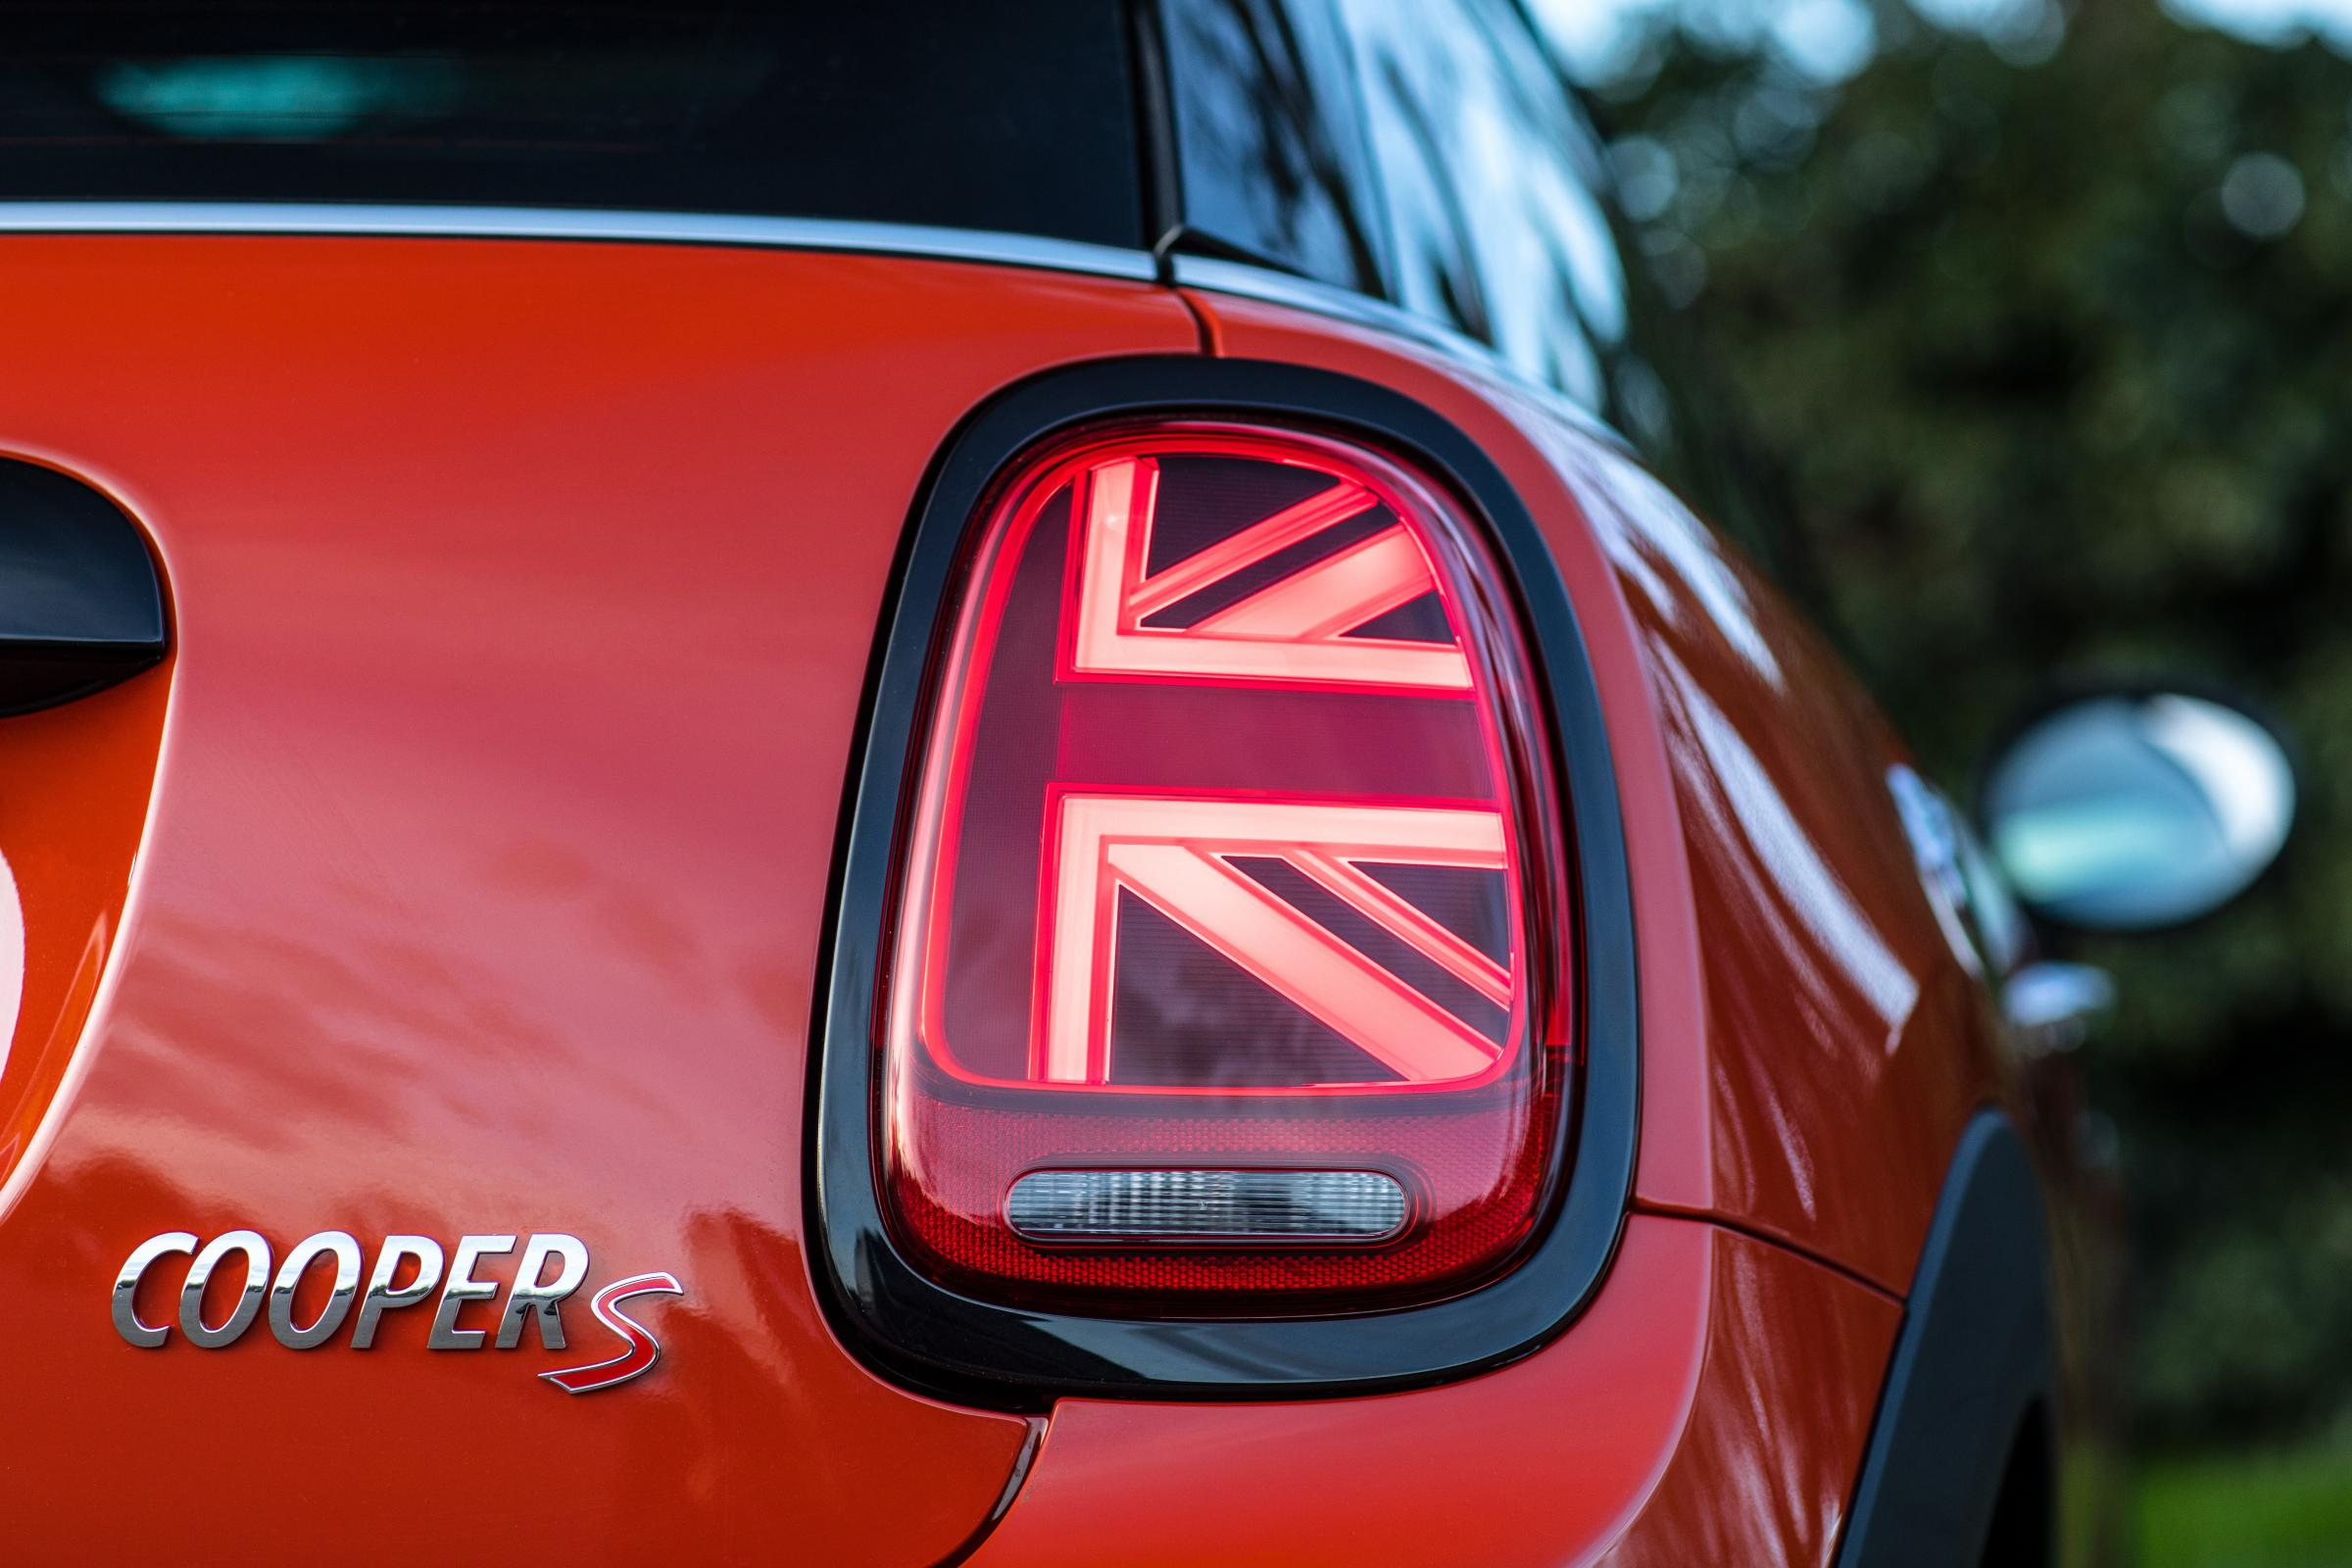 The tail lights on the mini range have a Union Jack design